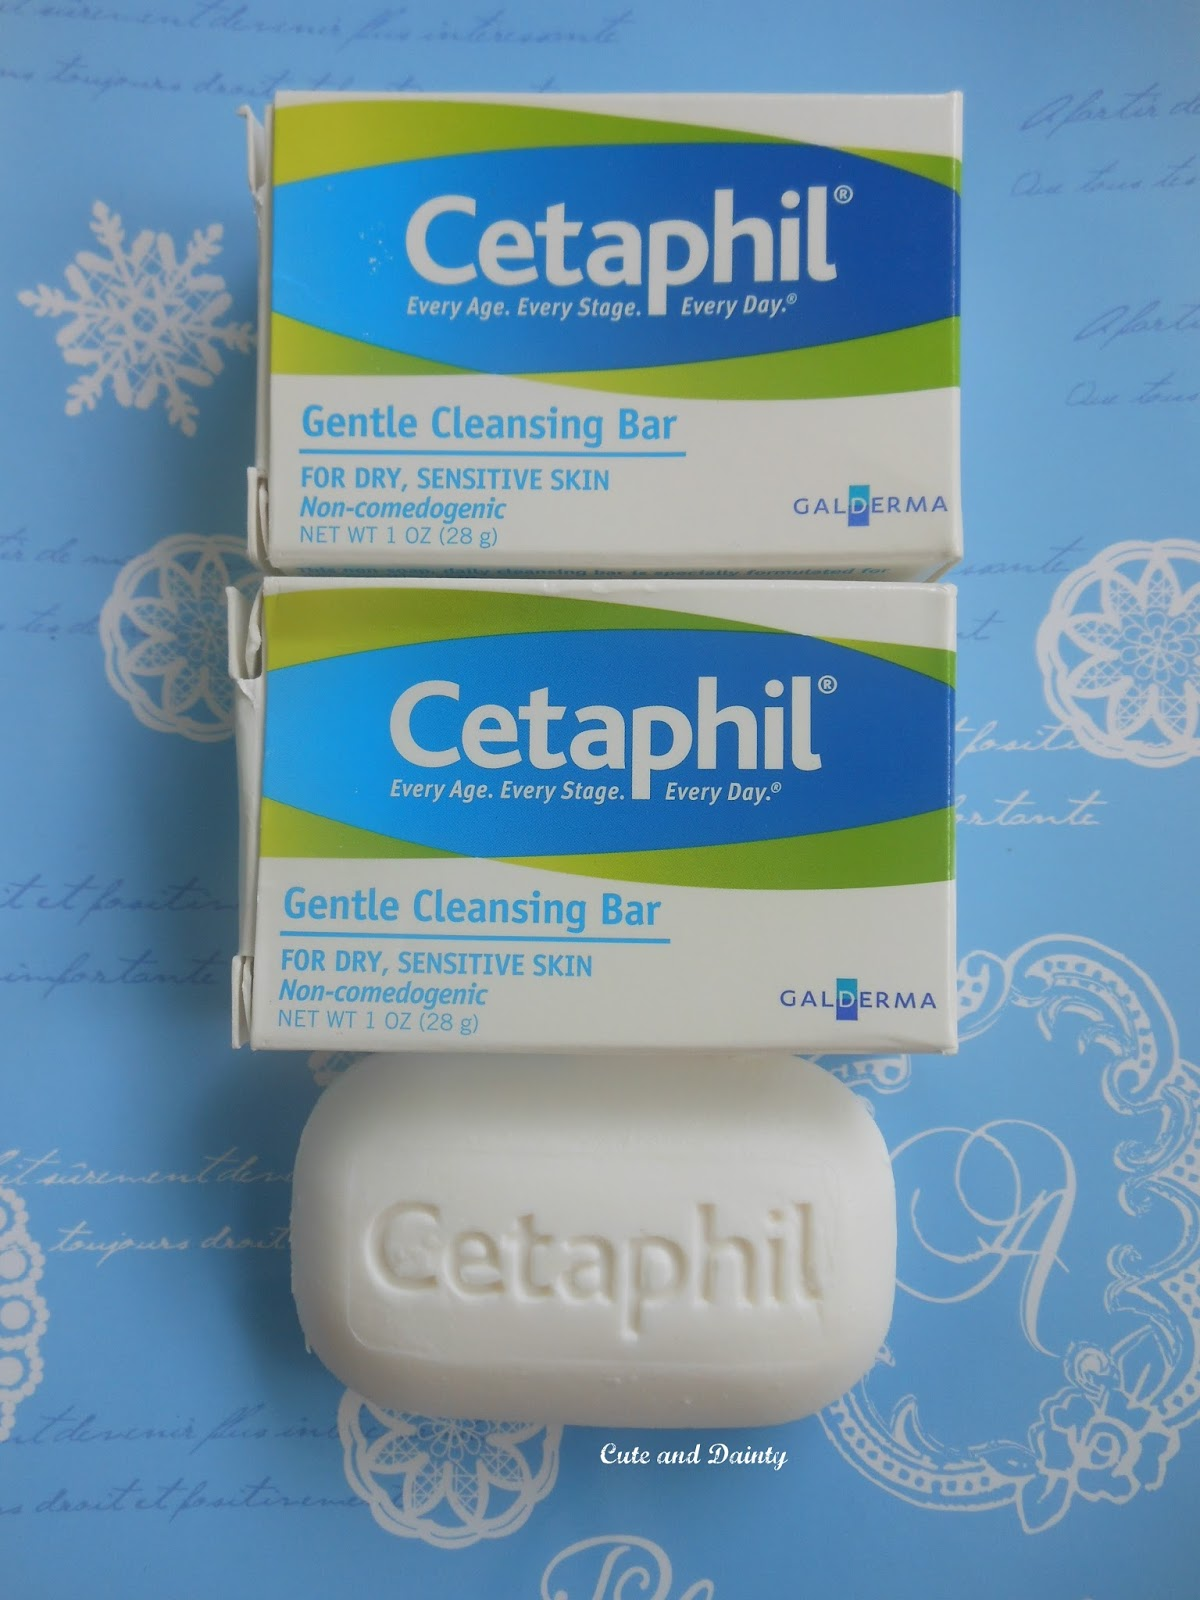 Gentle Cleansing Bar by cetaphil #16